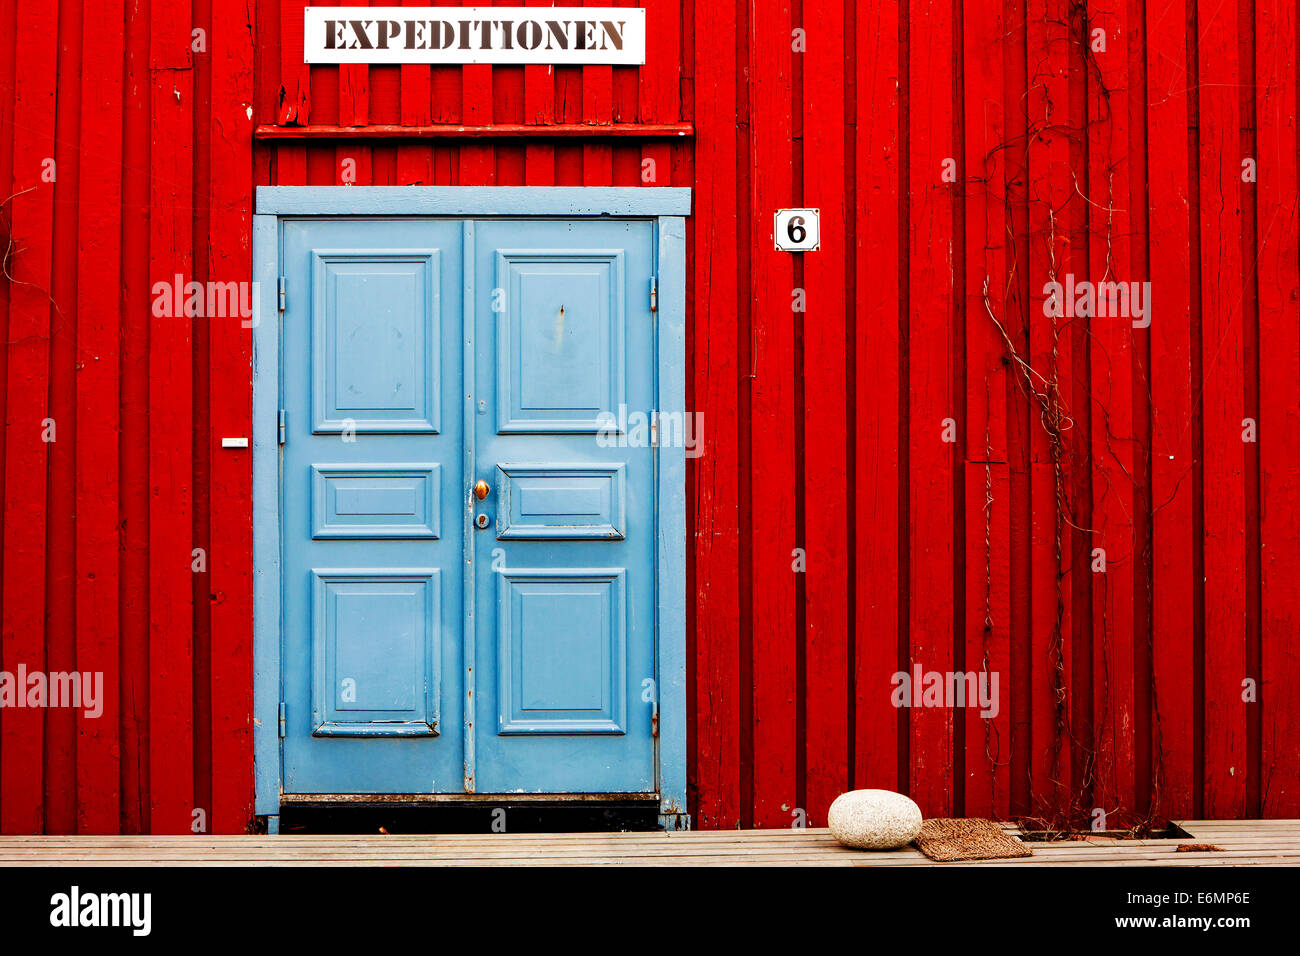 Entrance to a tour operator's office for expeditions, near Henningsvaer, Lofoten, Norway - Stock Image